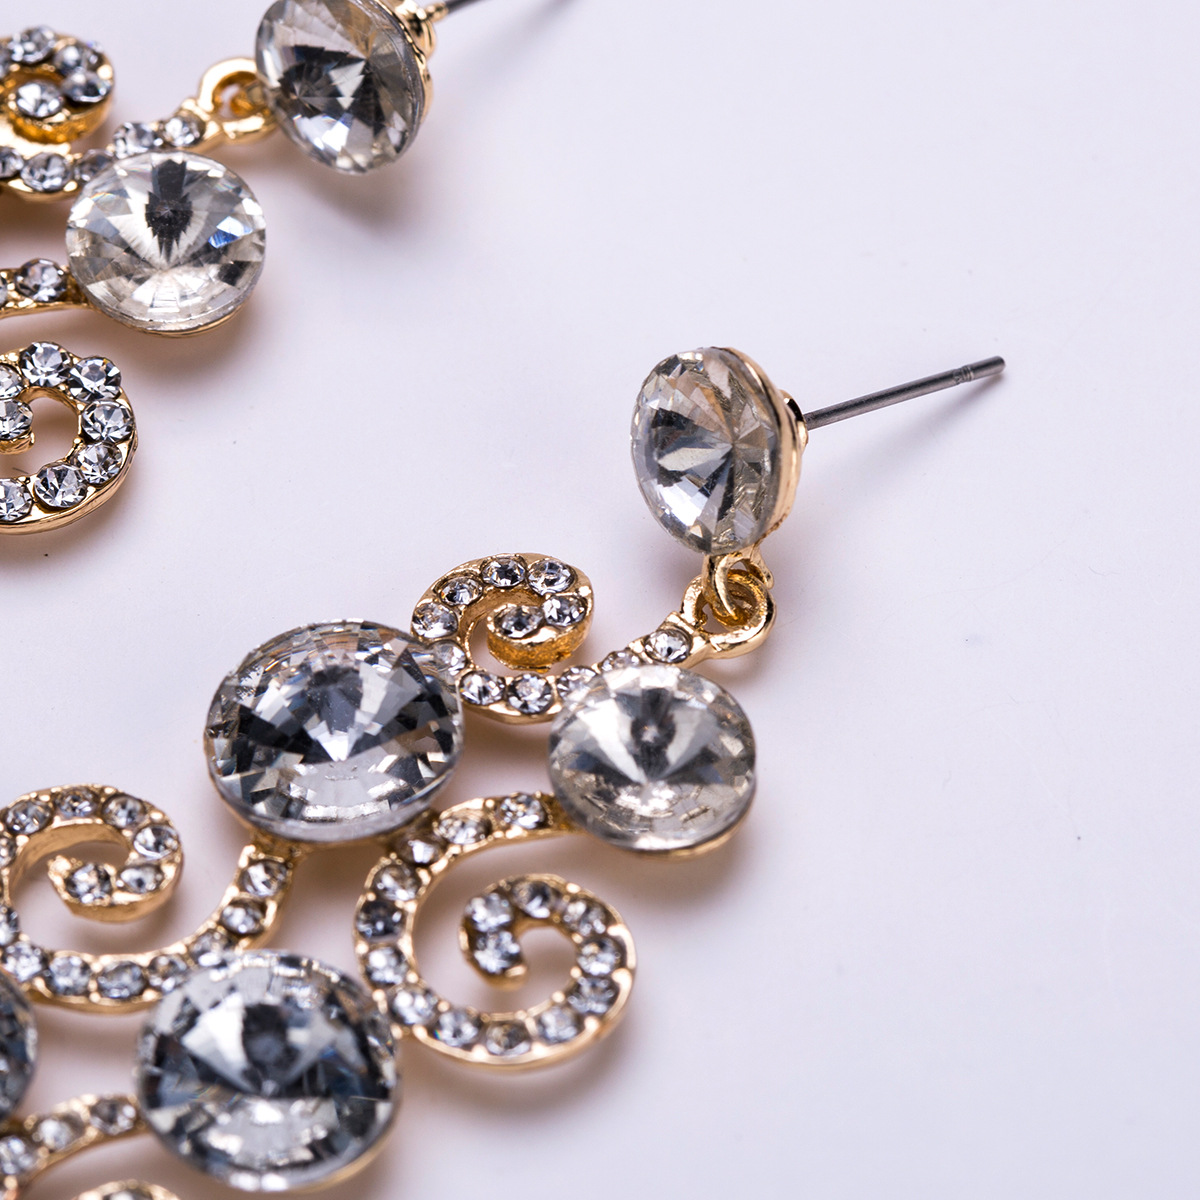 Alloy Fashion Flowers earring  (Alloy) NHJE1500-Alloy